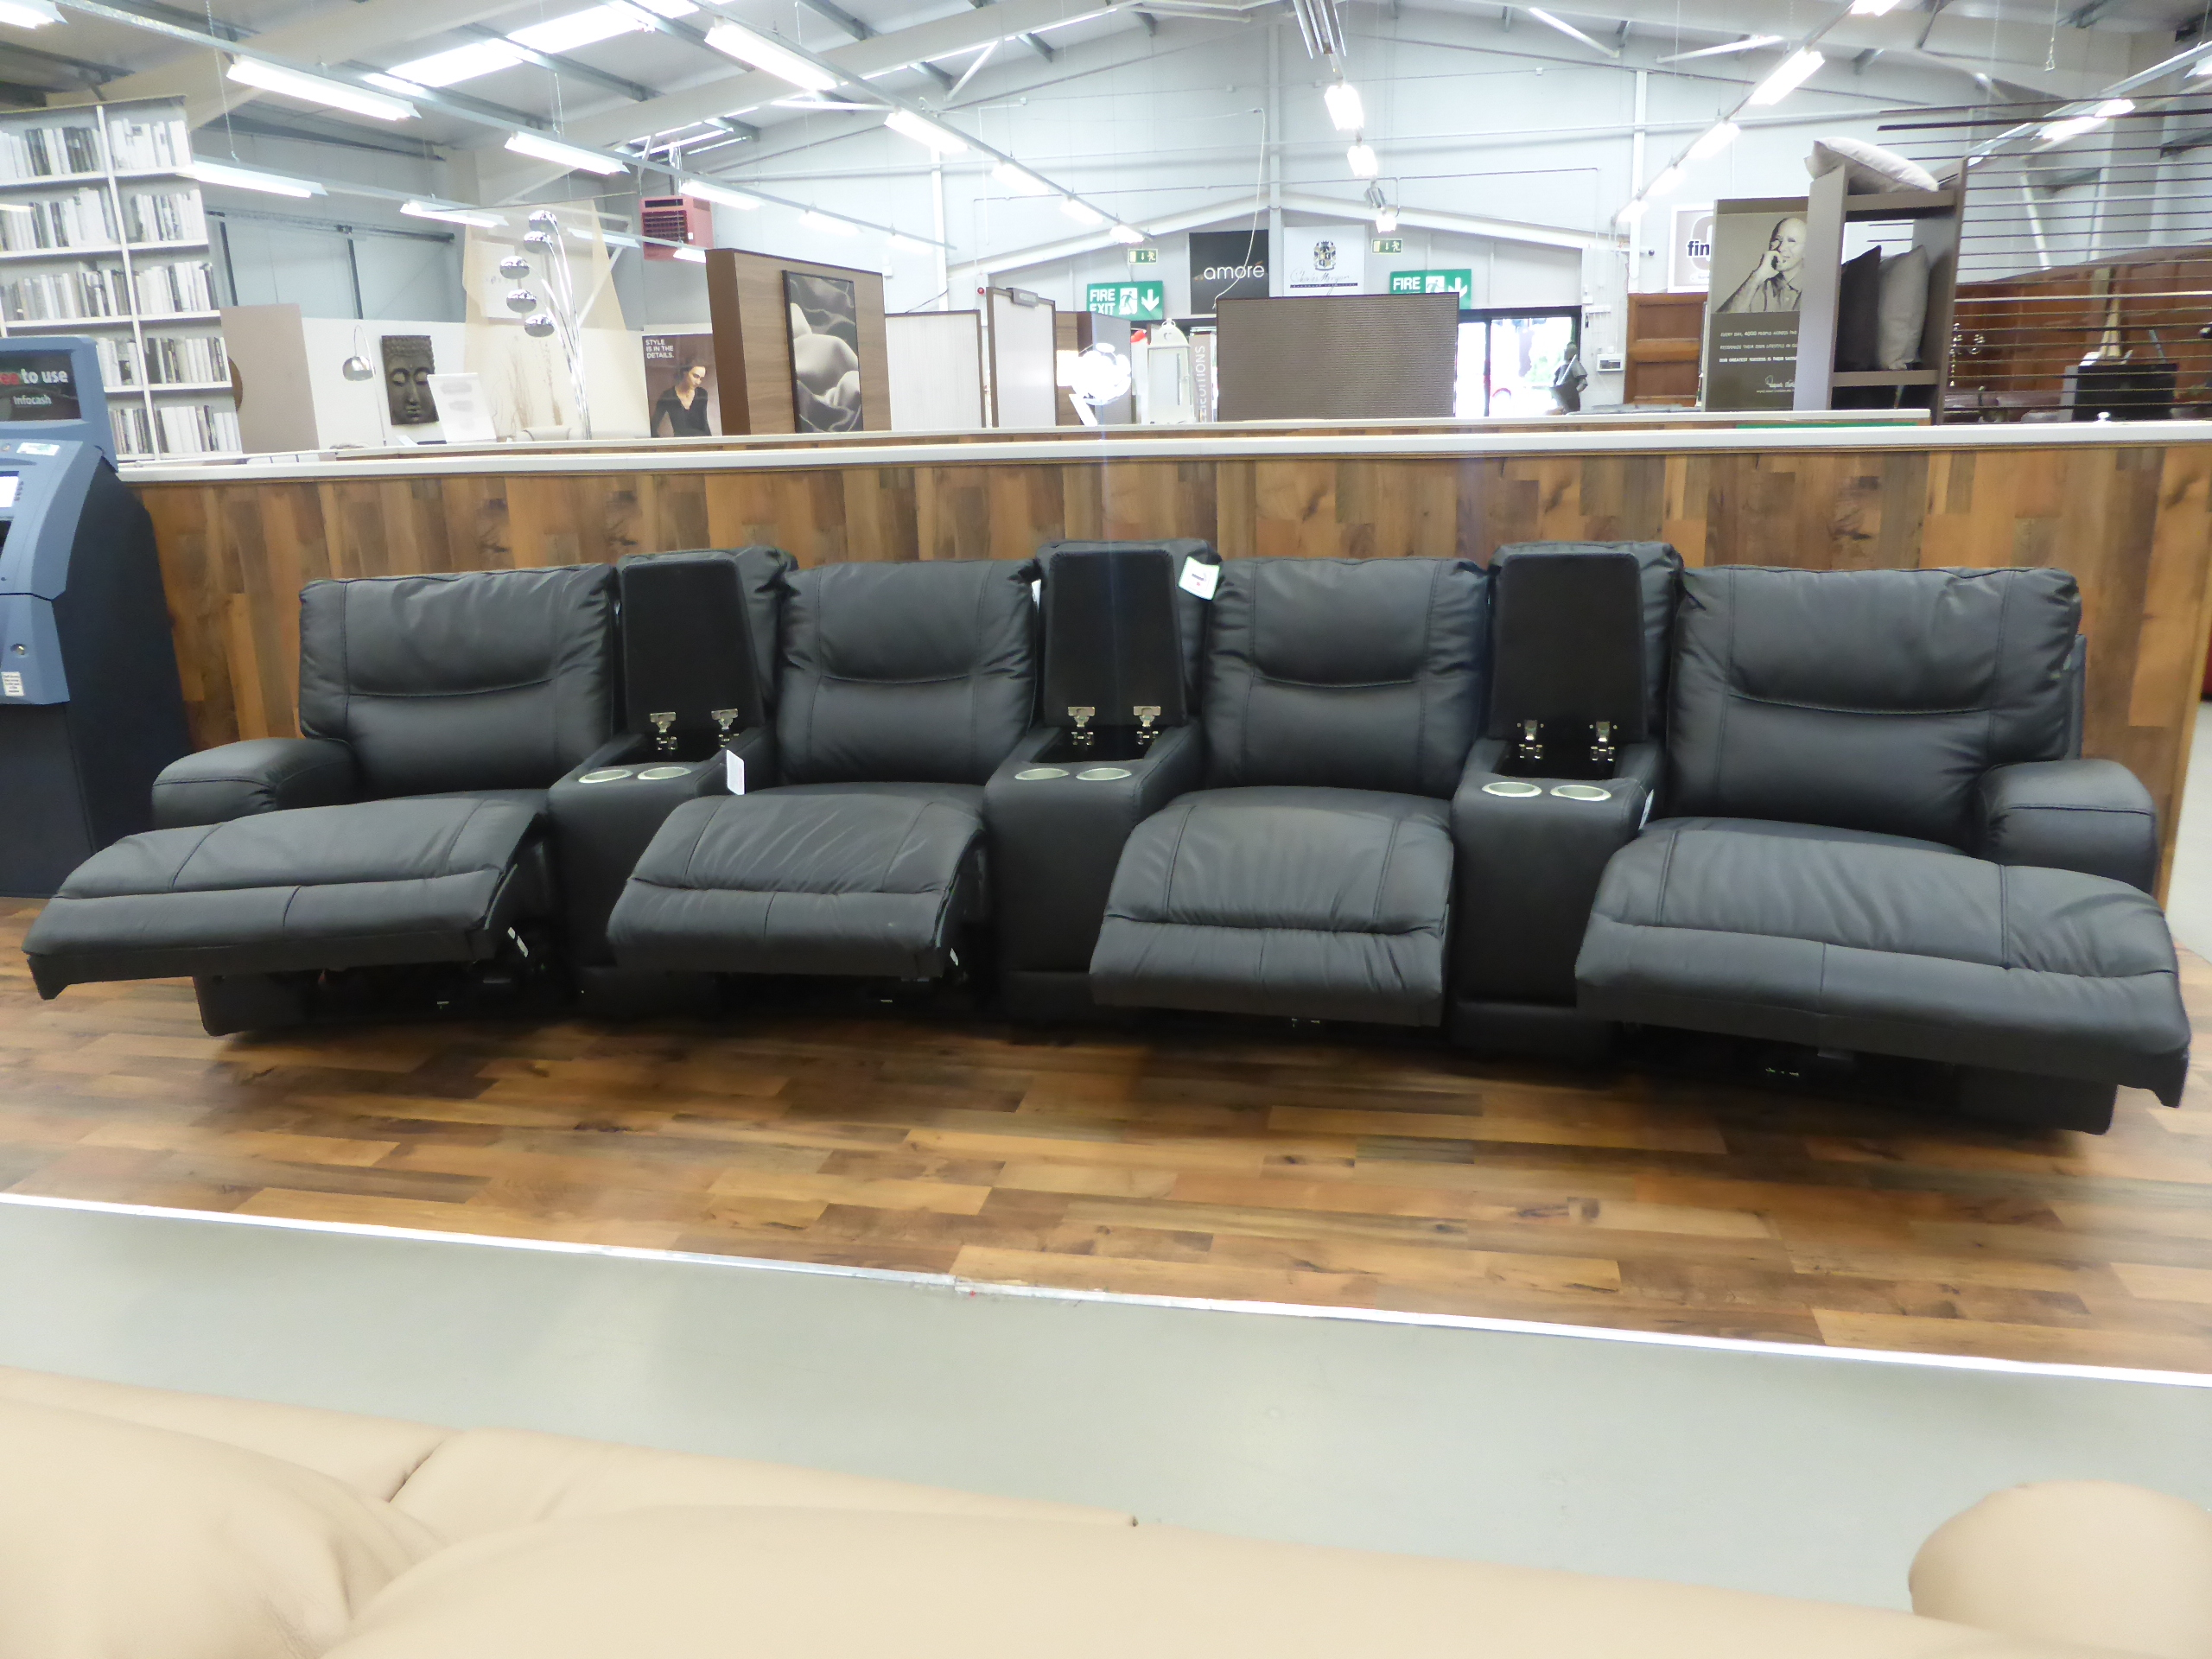 Cinemasofa Teatro Electric Reclining Cinema Sofa | Furnimax Brands Outlet